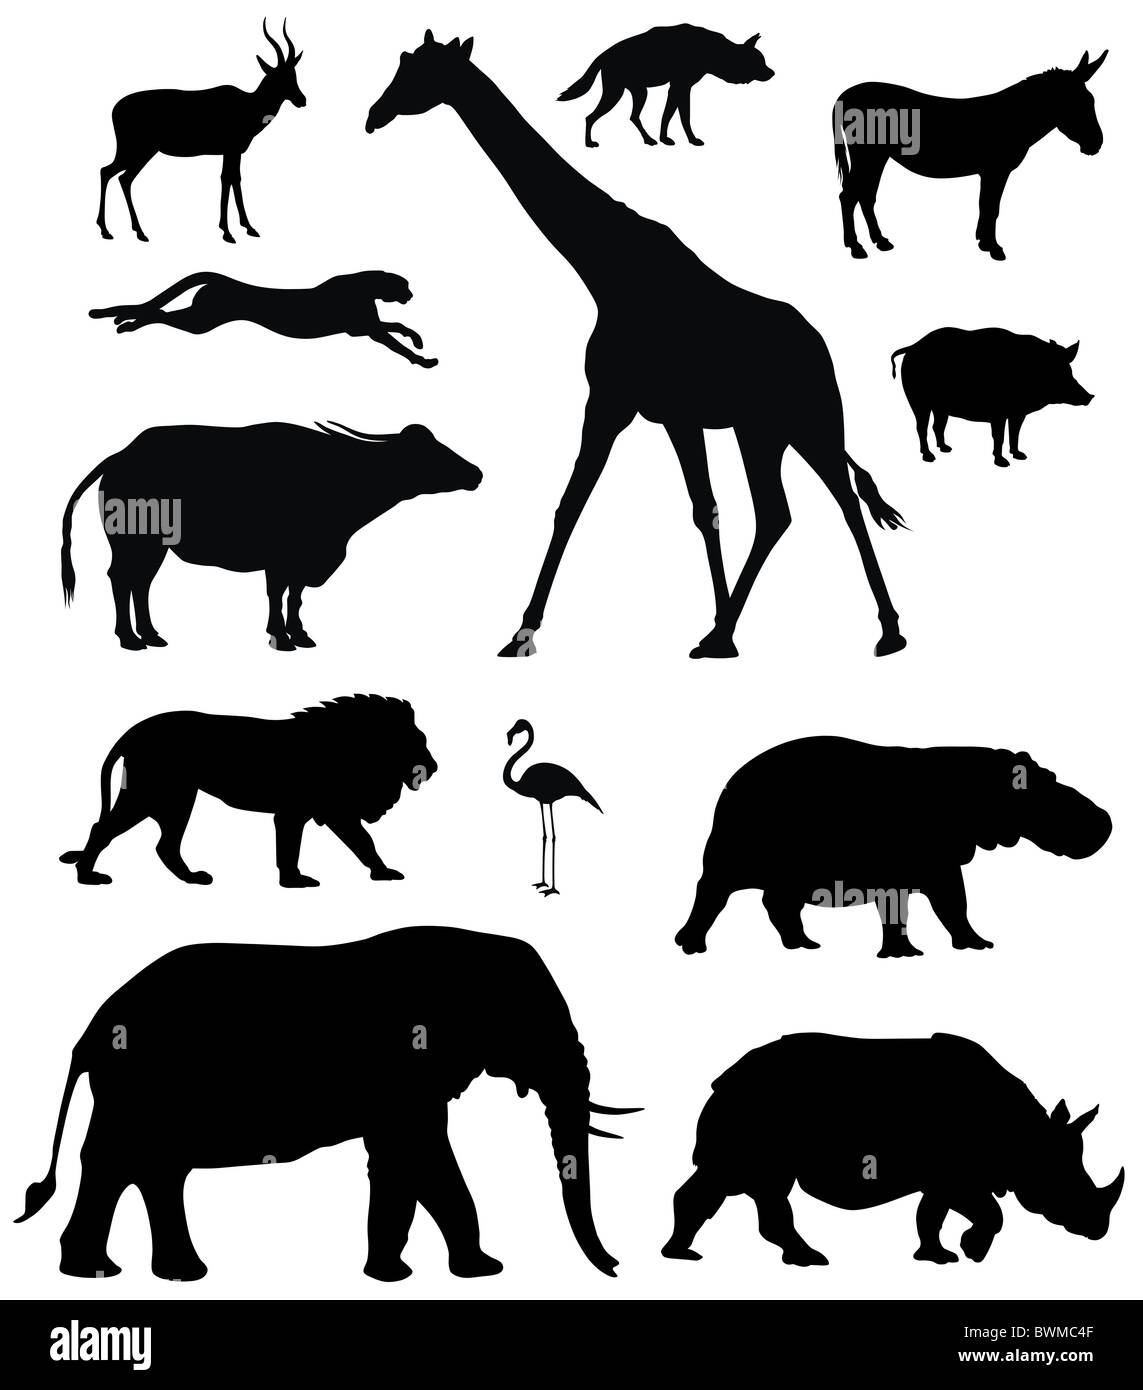 Illustration of African animal silhouettes - Stock Image